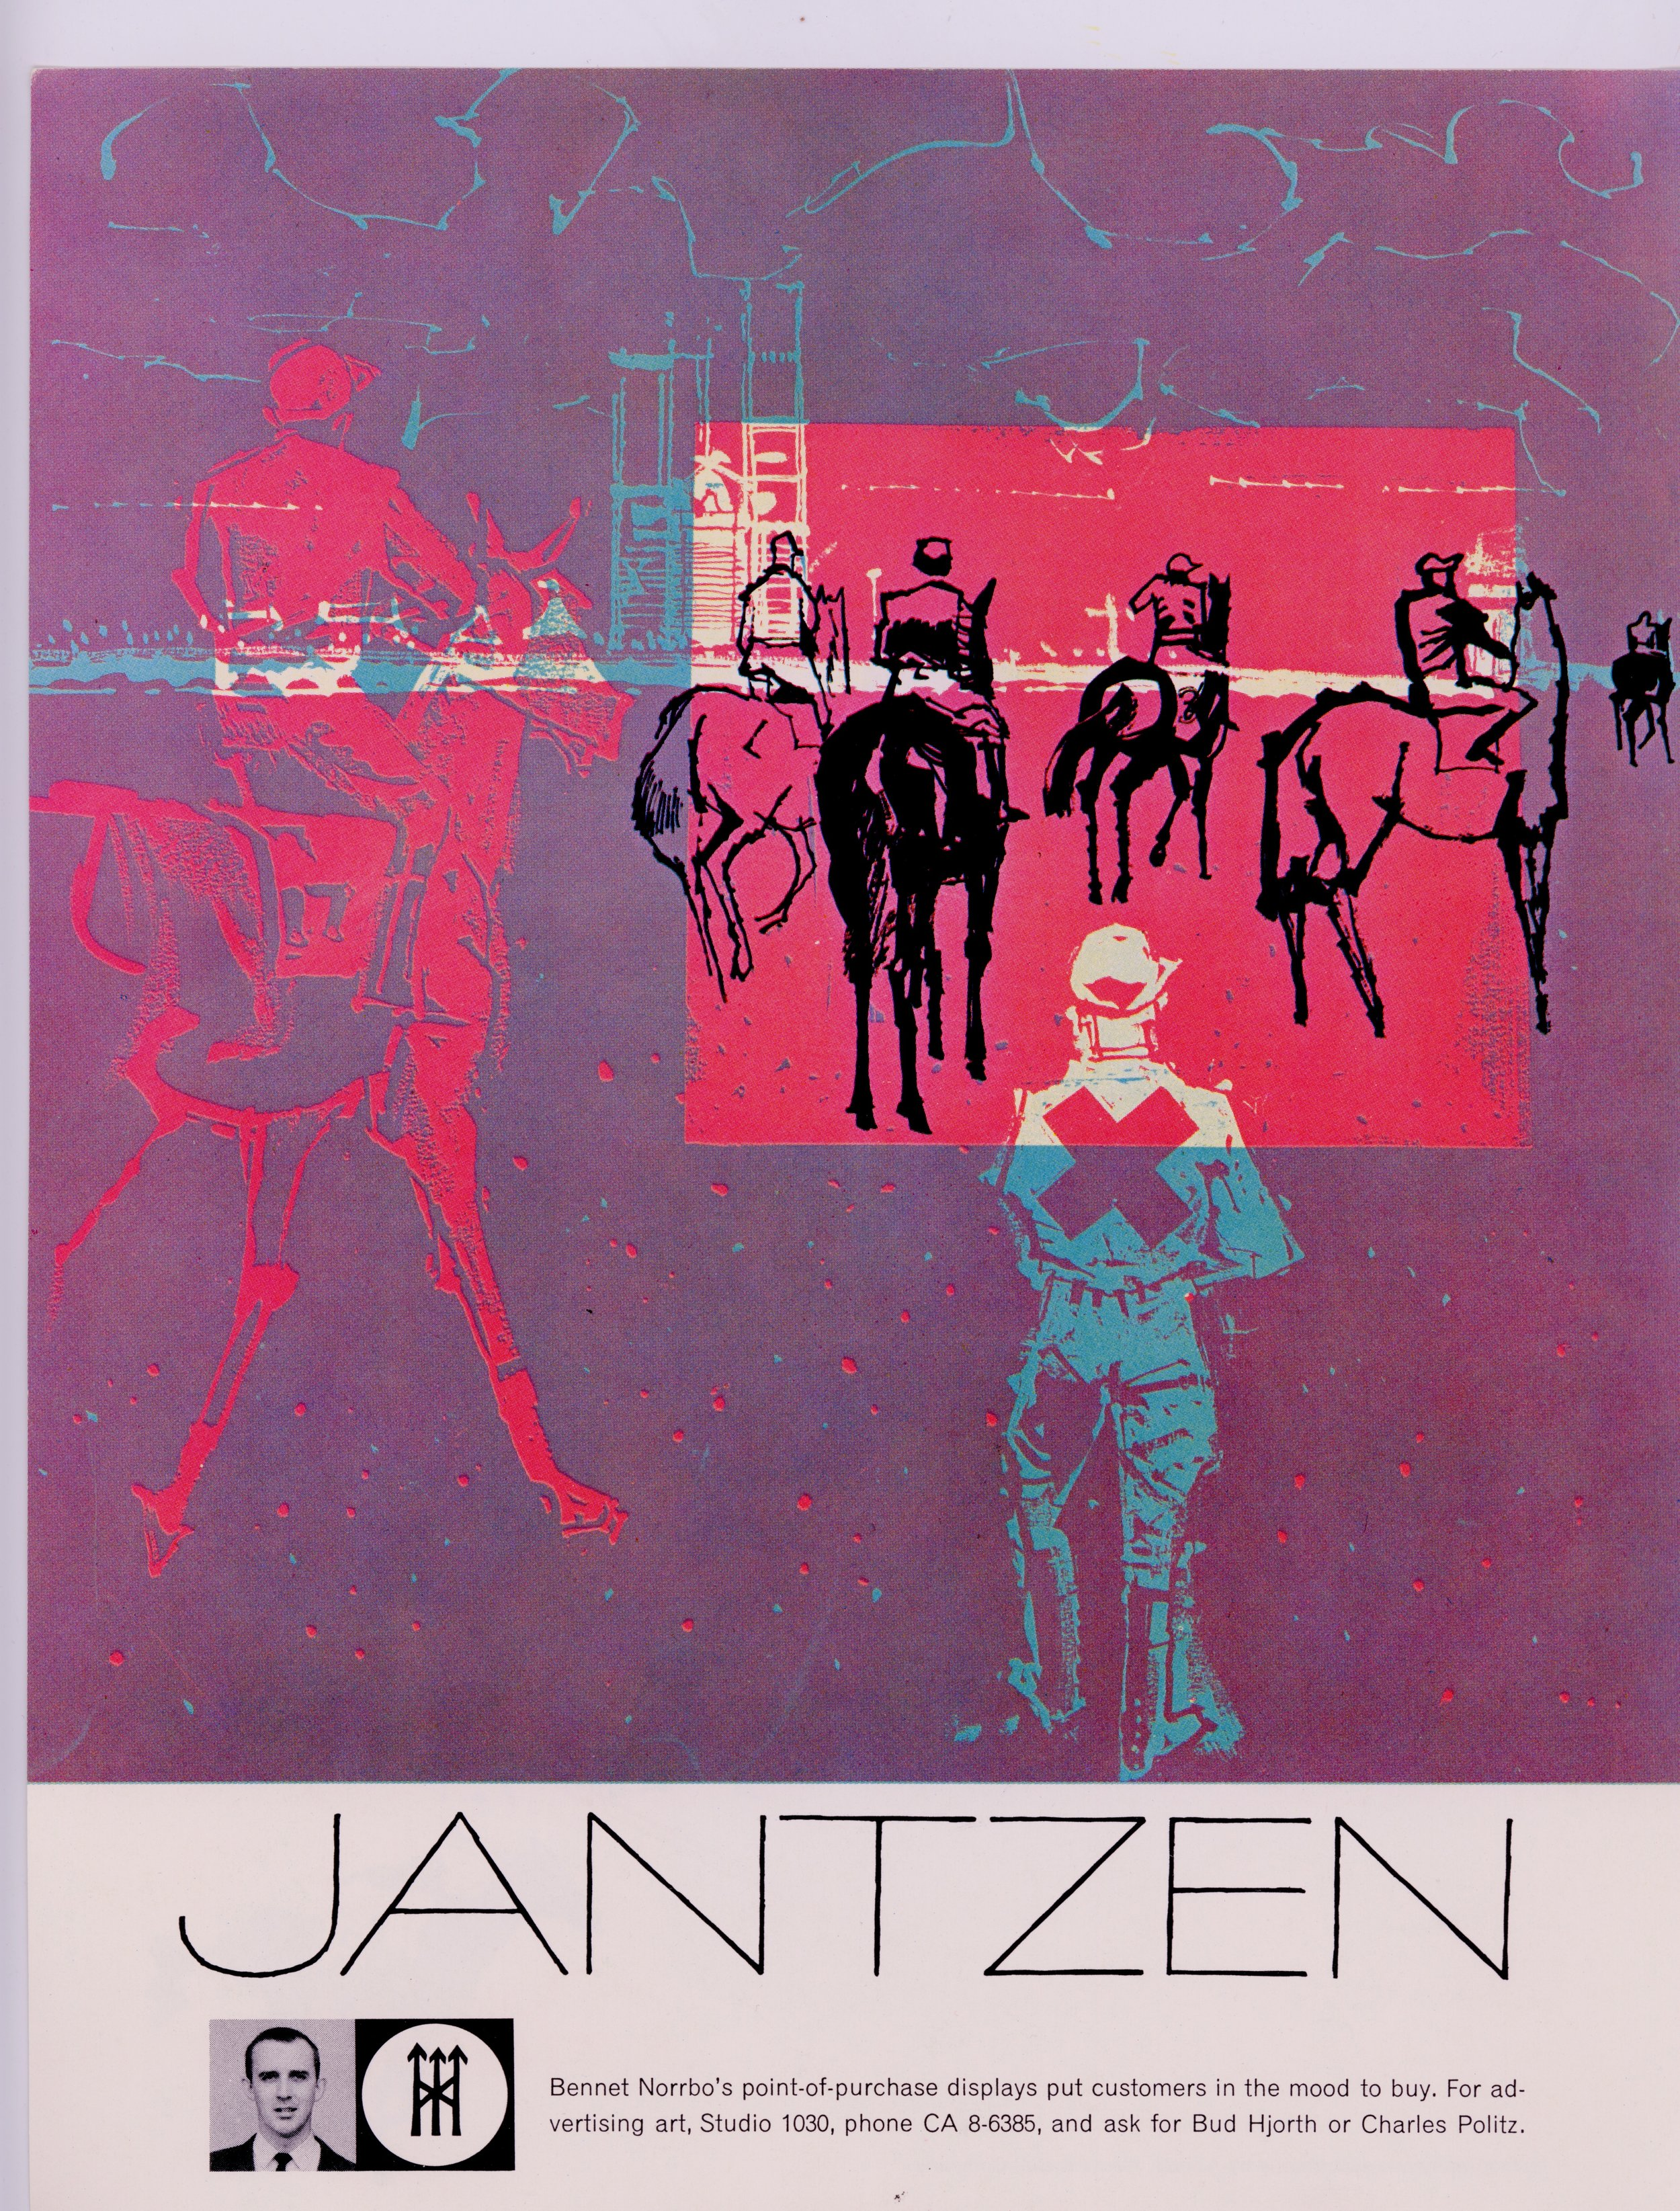 Promo sheet for Bennet Norrbo, showcasing his work for Jantzen.